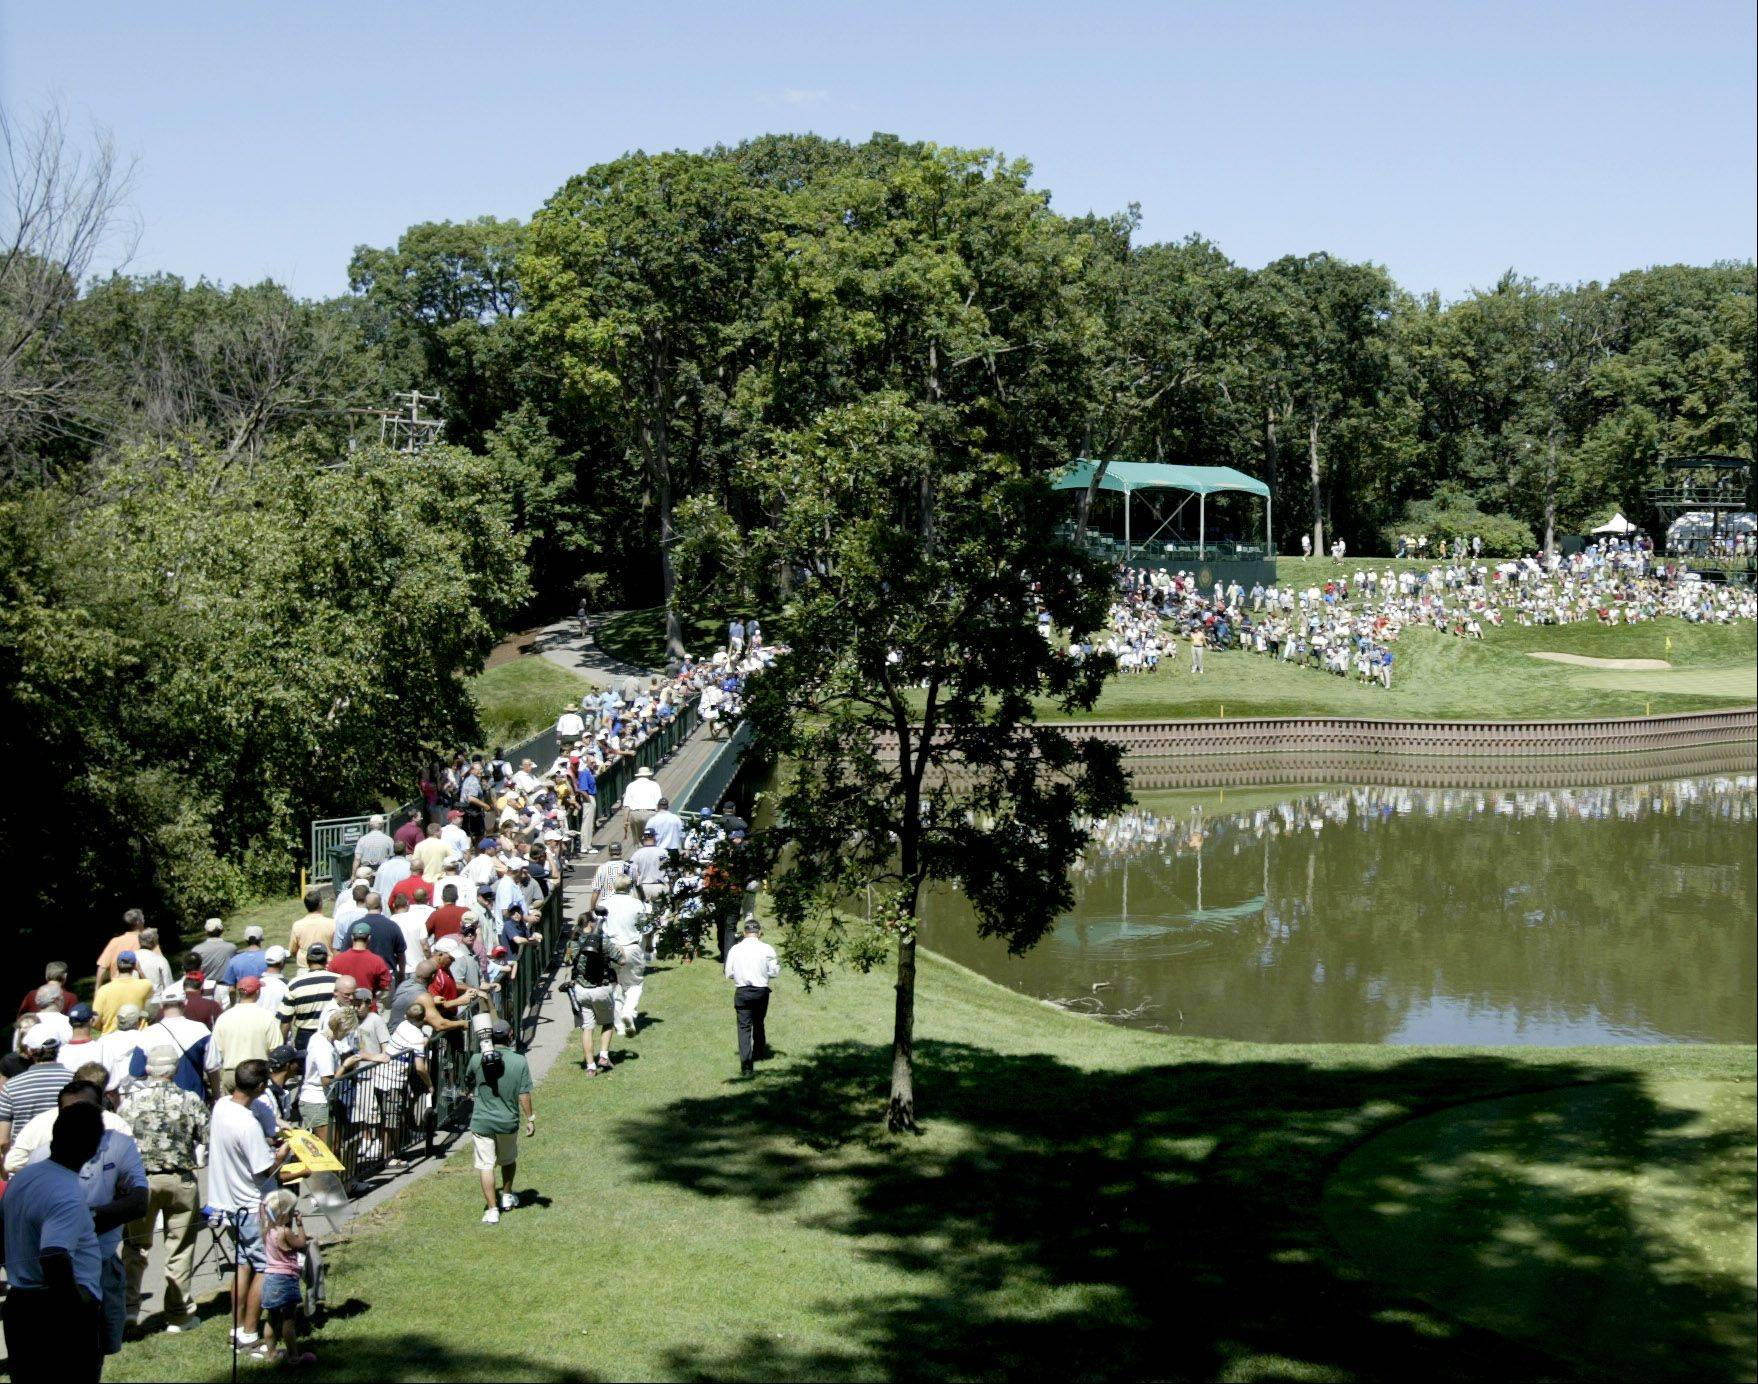 Medinah Country Club, which played host to the PGA Championship in 2006, will hold the 2012 Ryder Cup next fall.